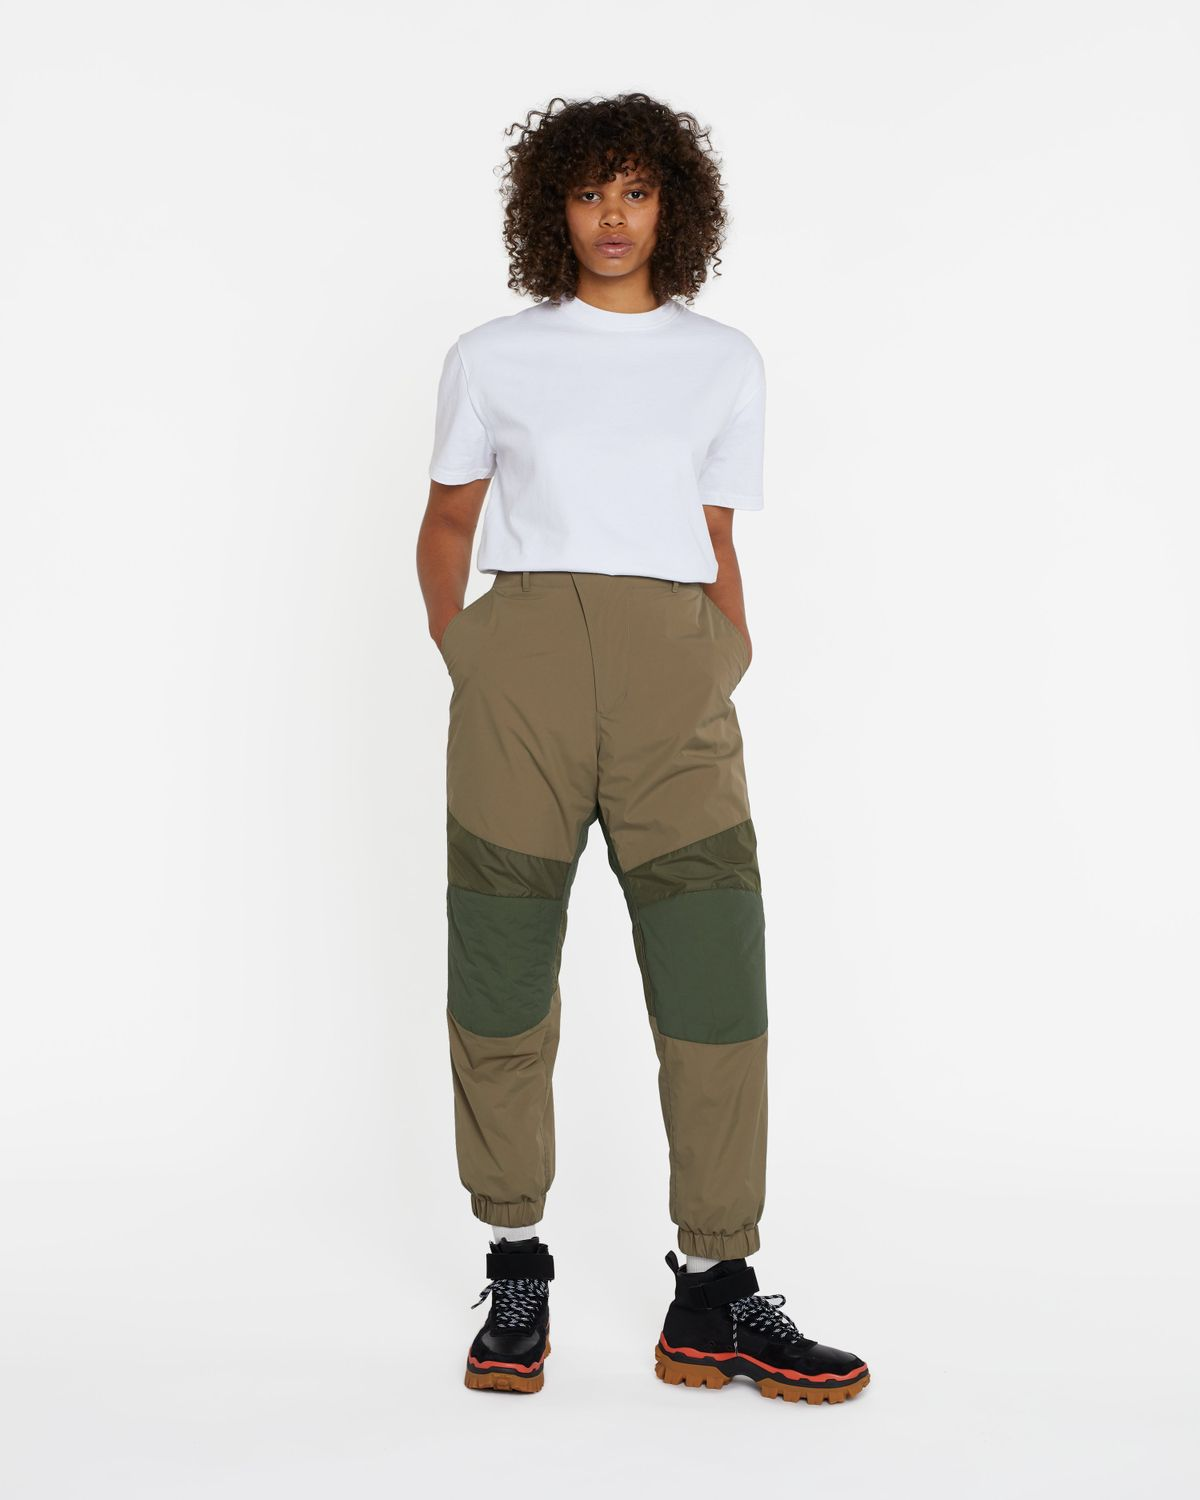 Moncler — Grenoble Recycled Sports Trousers - Image 4